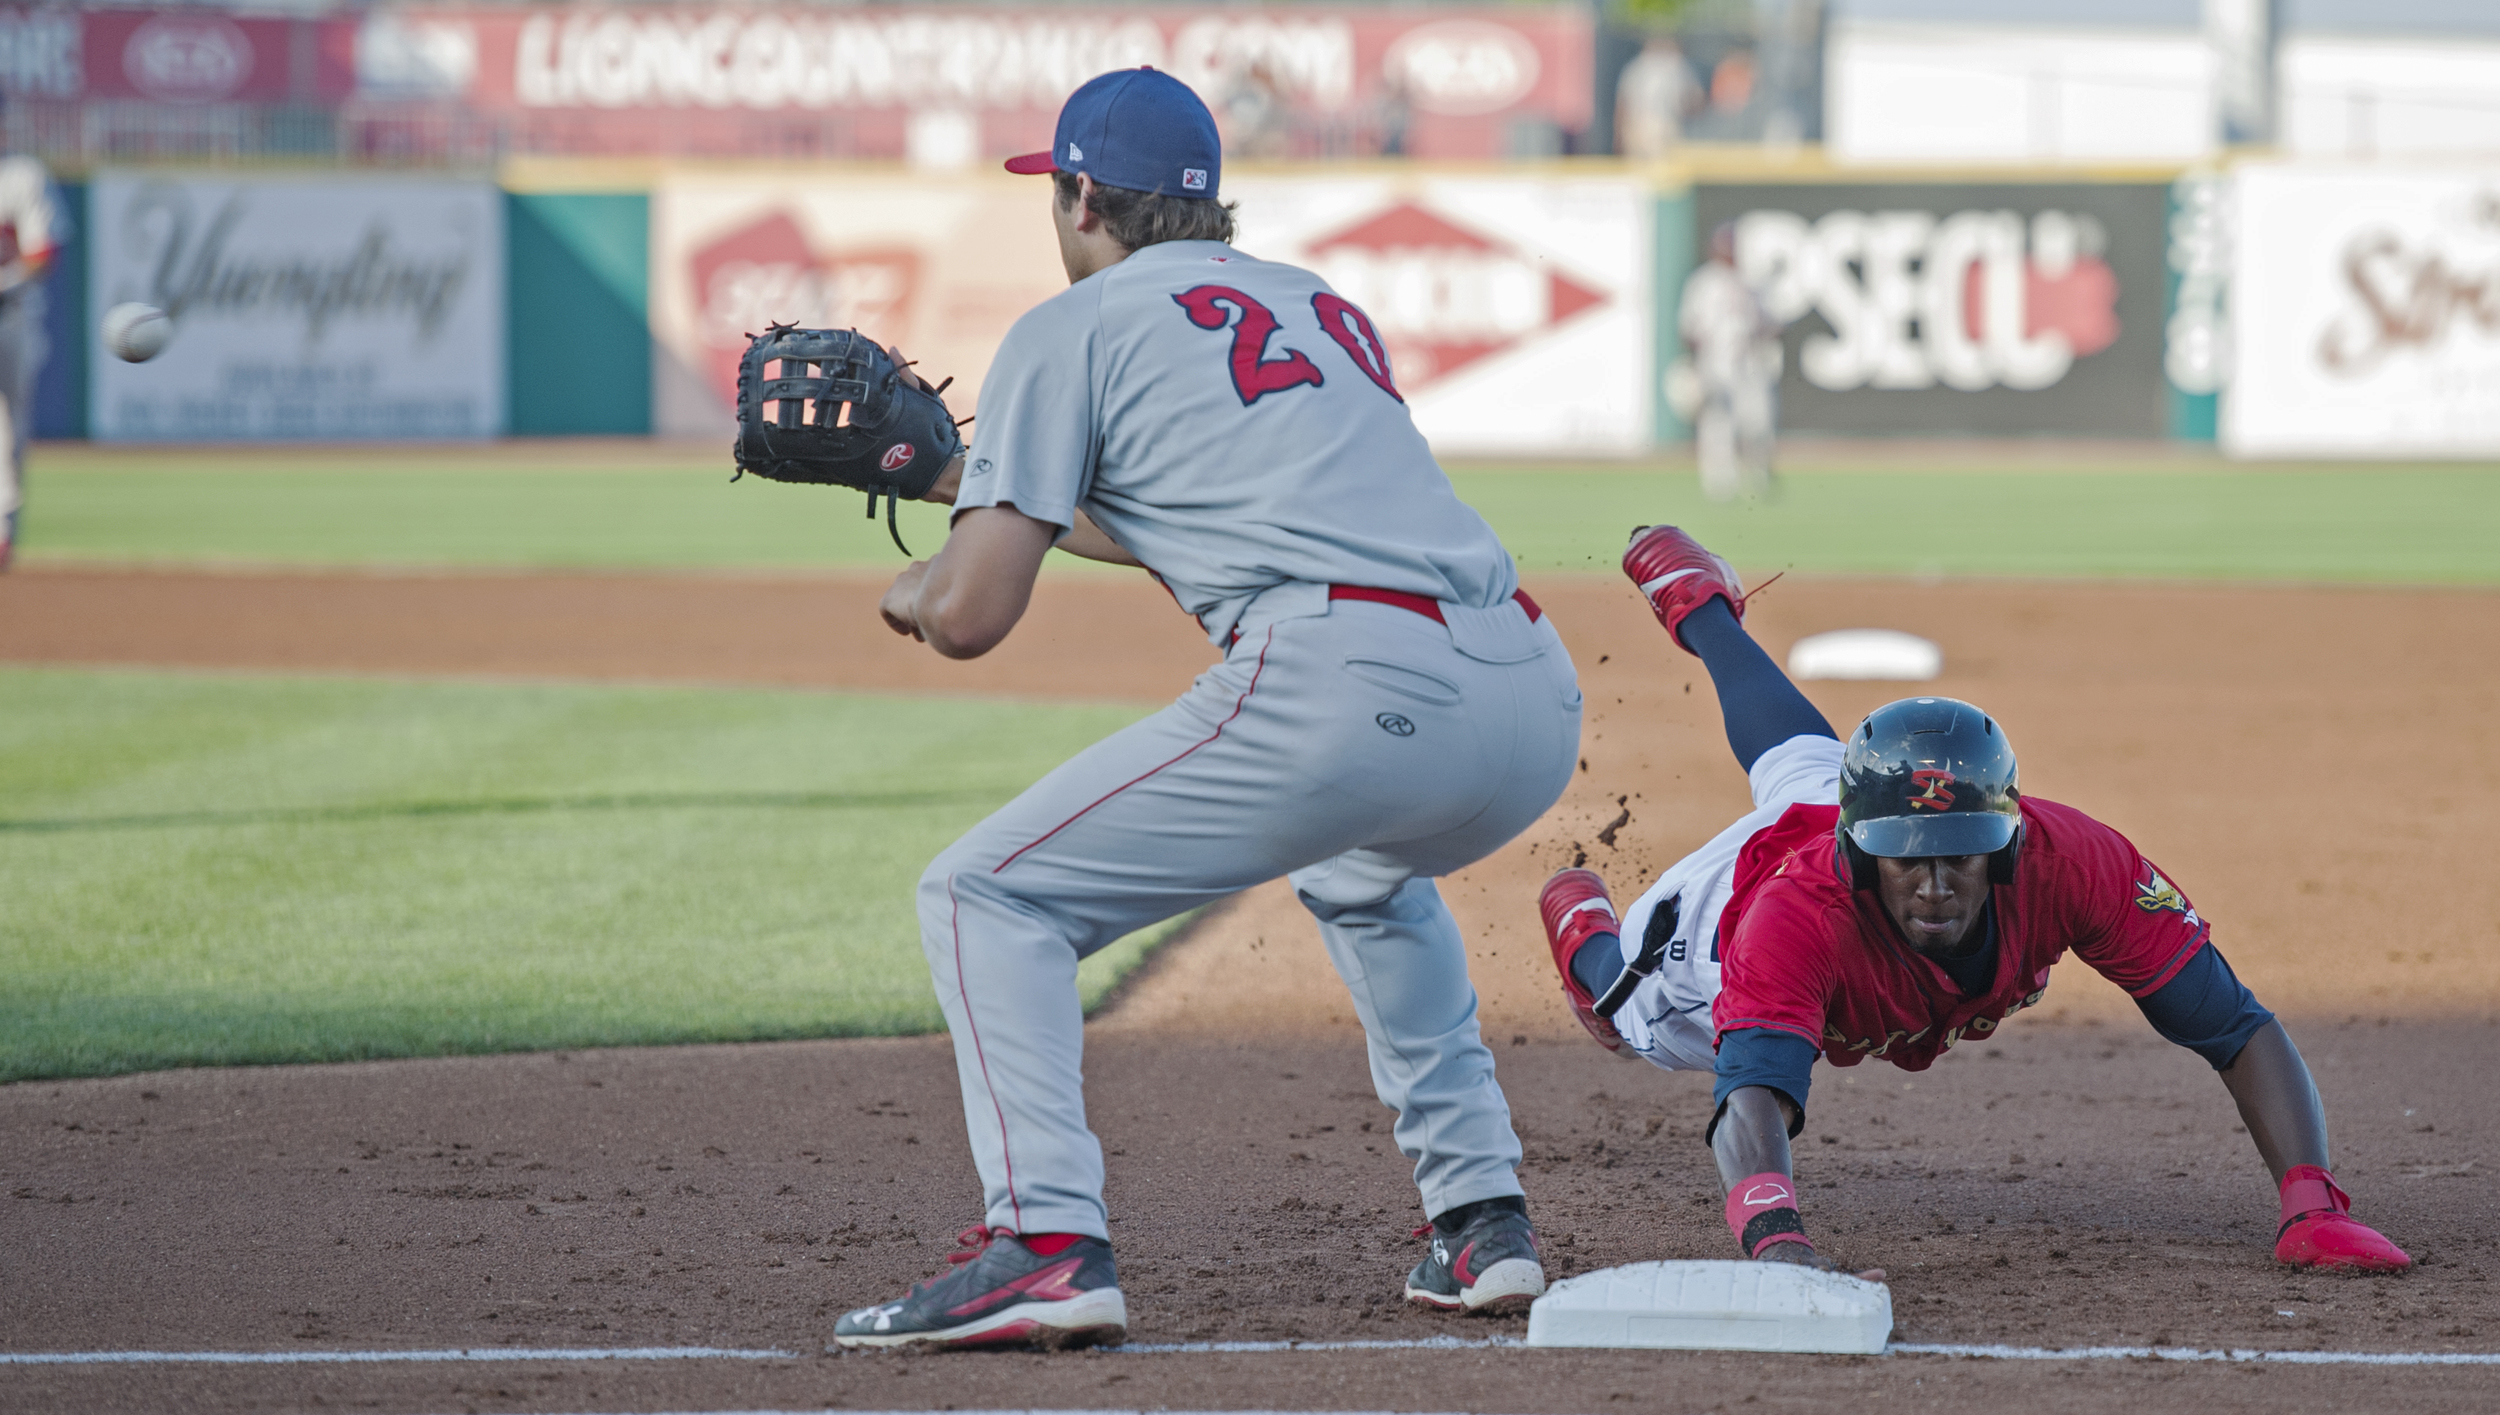 Auburn Doubledays first baseman Ryan Ripken turns to catch a throw from the pitcher as State College Spikes left fielder Vince Jackson dives back to first base after being caught trying to steal during the second game of their series at Medlar Field on Friday, July 22, 2016.